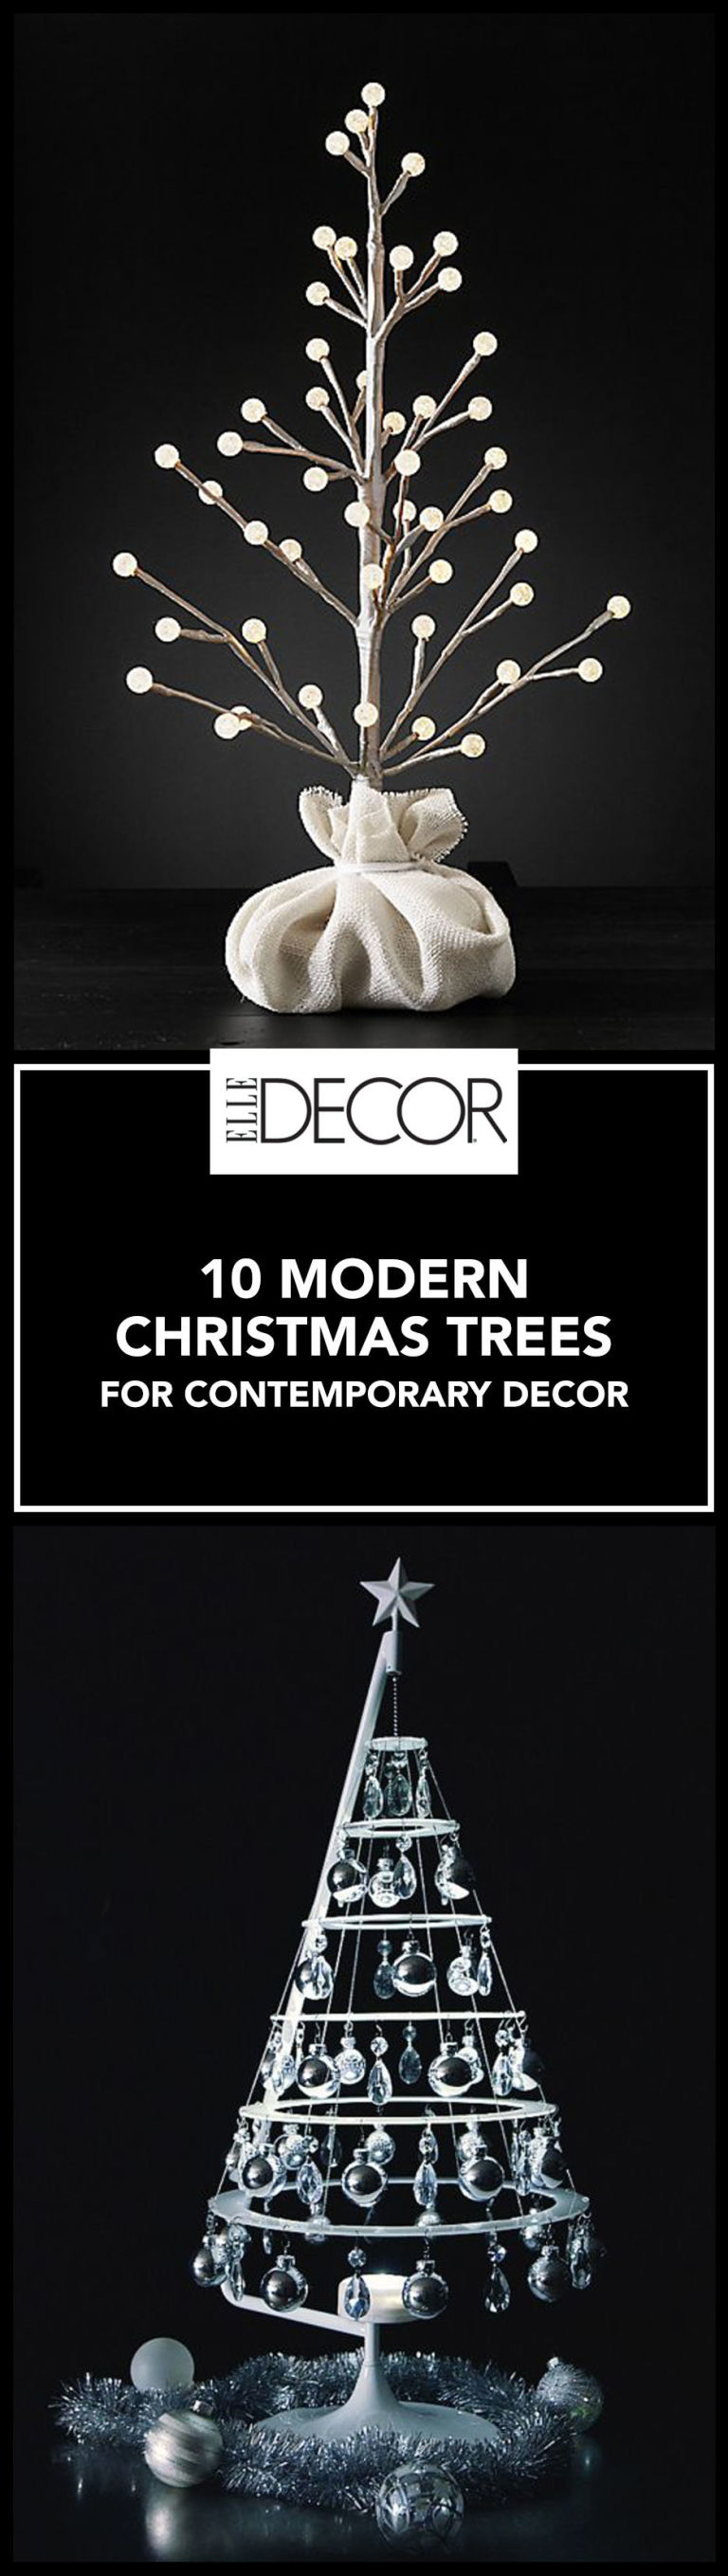 Contemporary decorations pictures